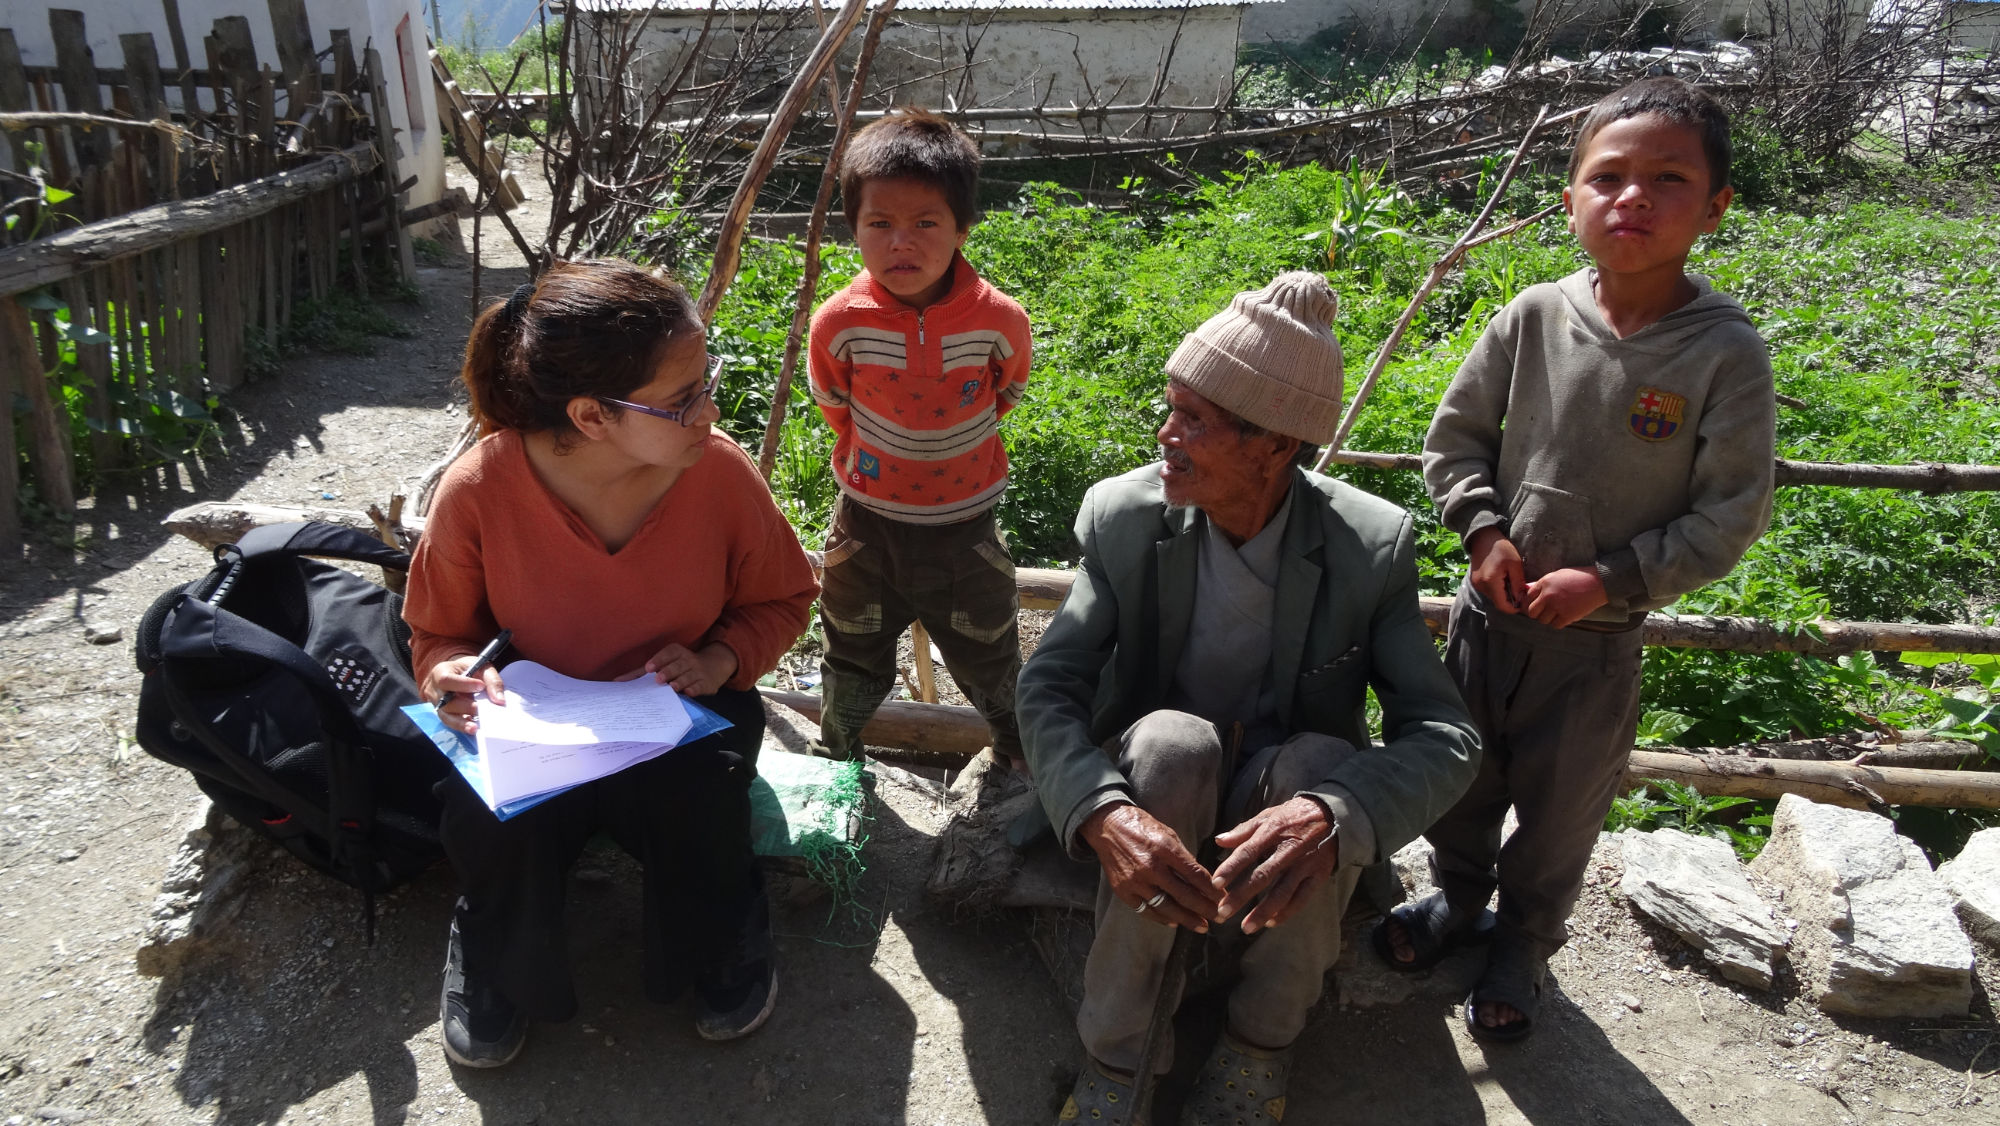 Woman surveying elderly man and two young boys